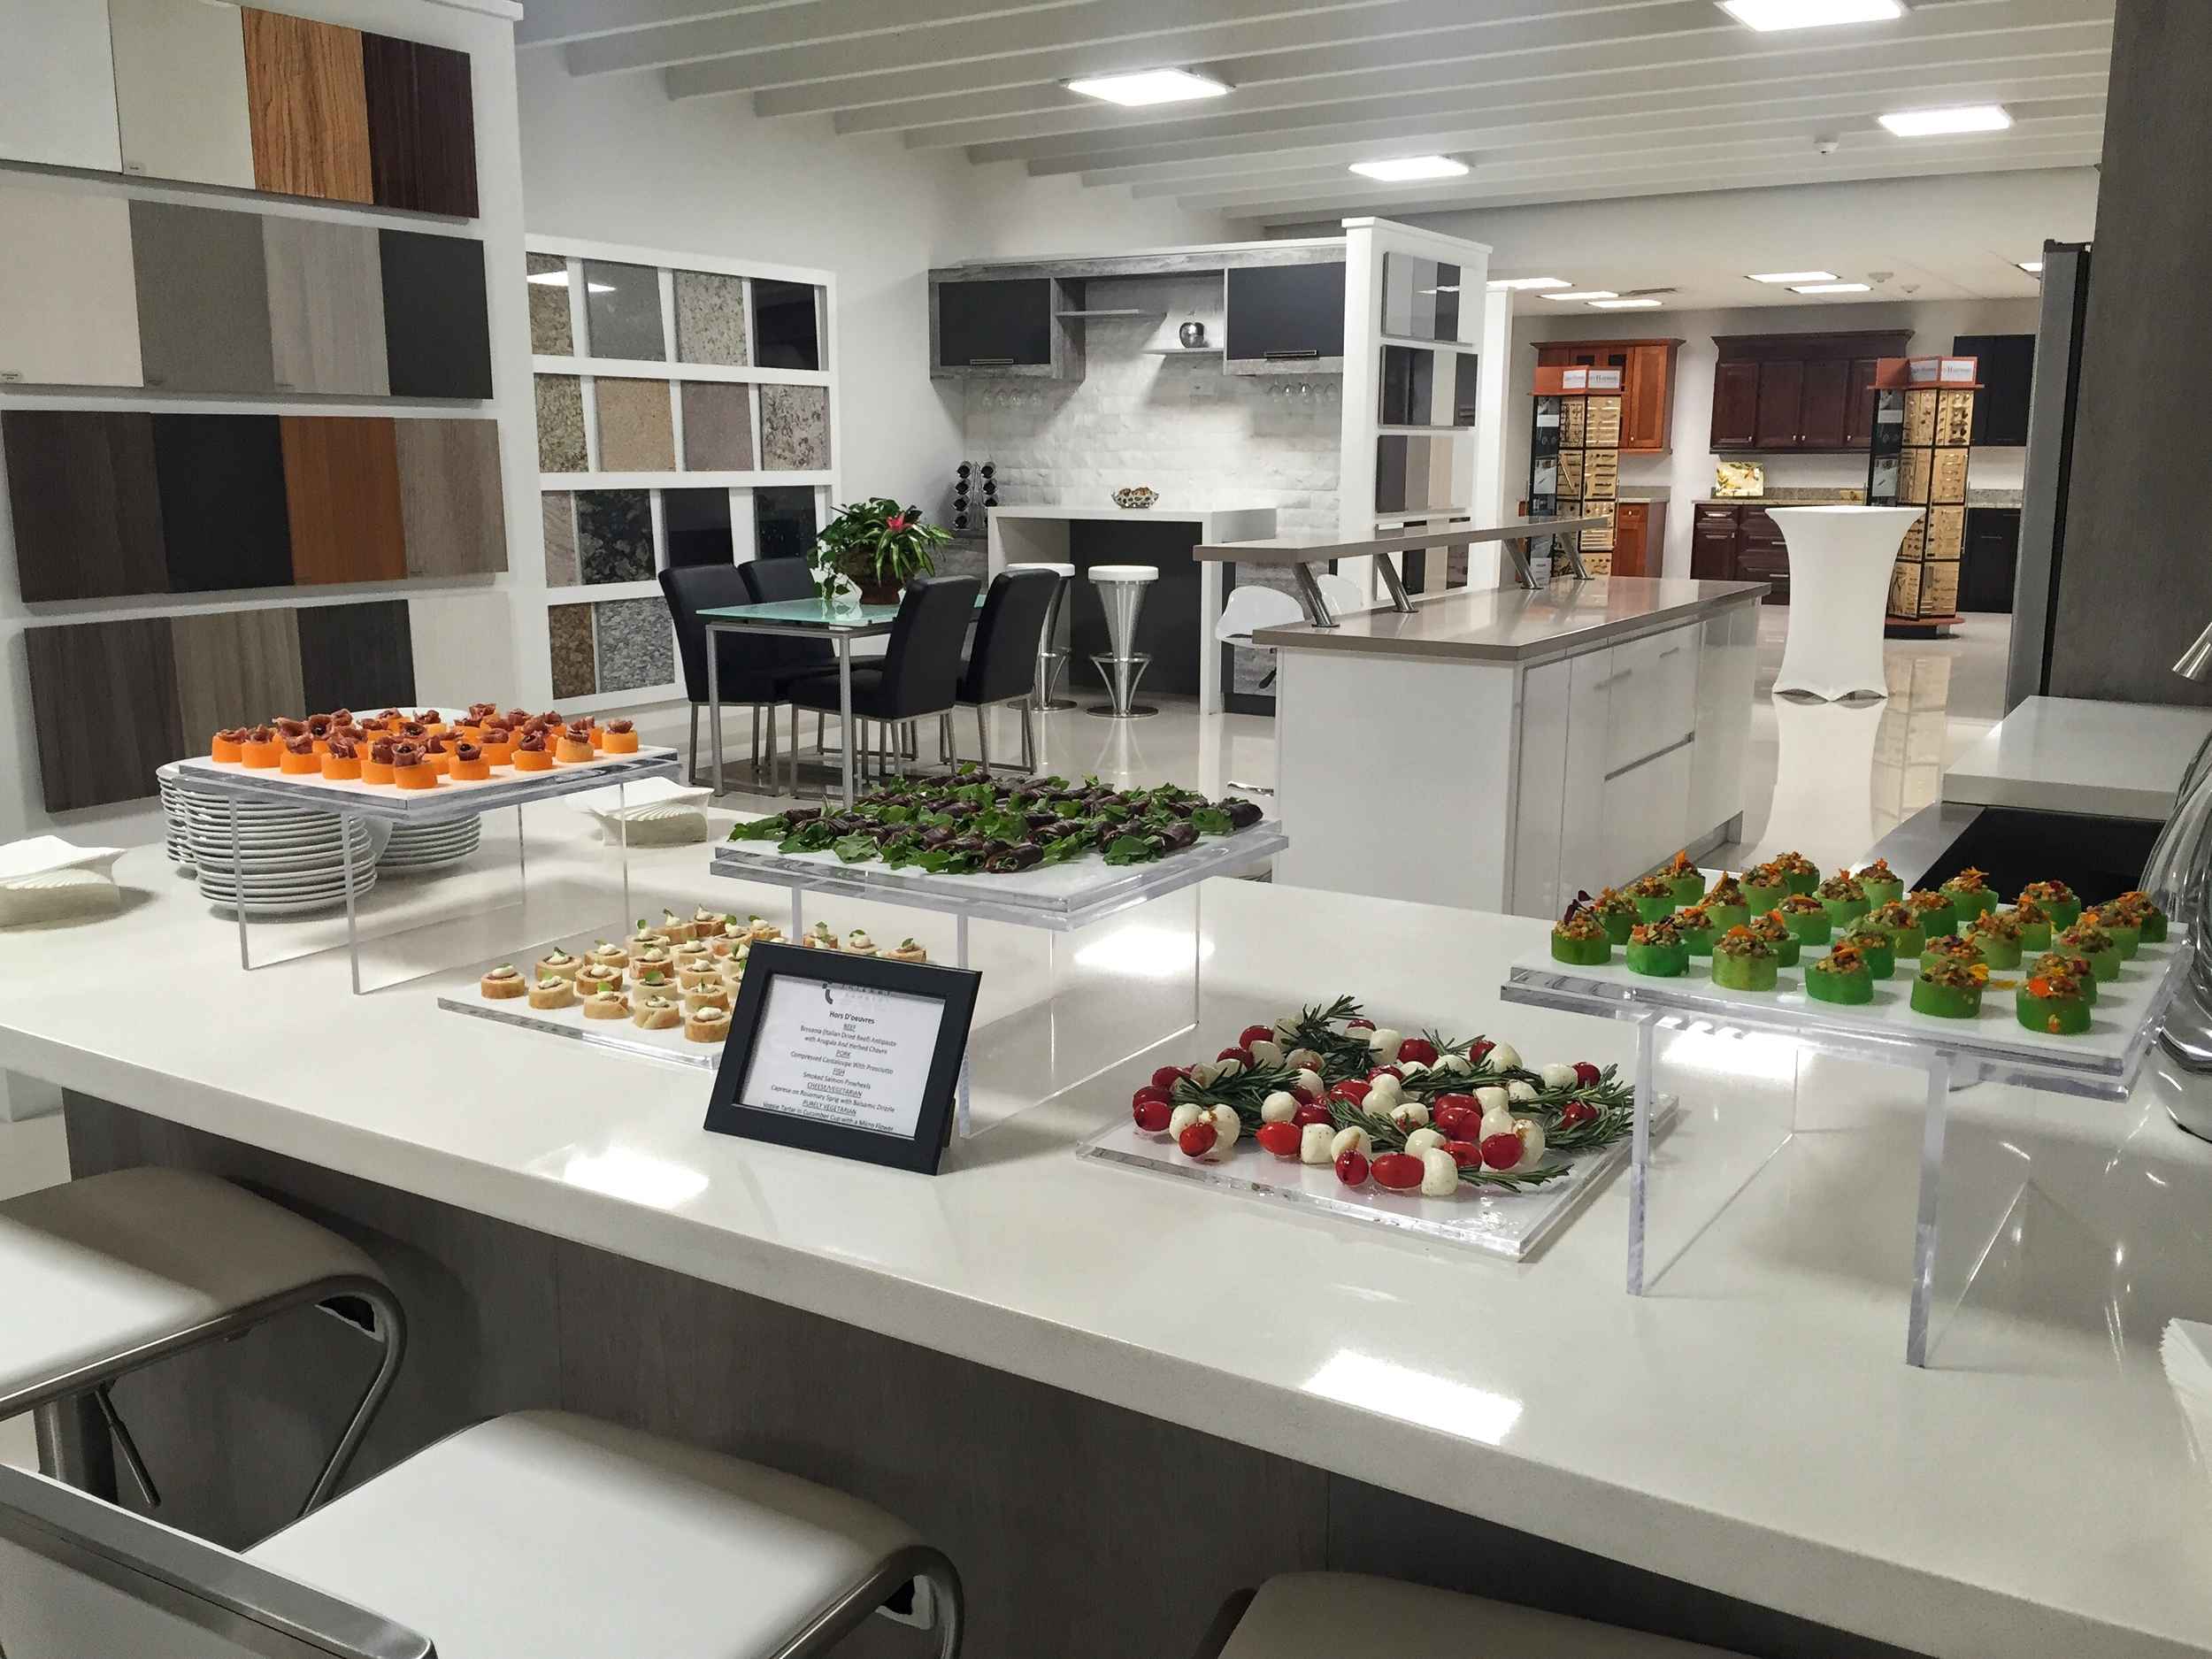 Chic, contemporary spread for grand opening of 35,000 square foot offices, warehouse and state-of-the-art showroom of leading wholesale building materials supplier in Doral. Doral's mayor, Luigi Boria, was in attendance for the ribbon cutting ceremony.